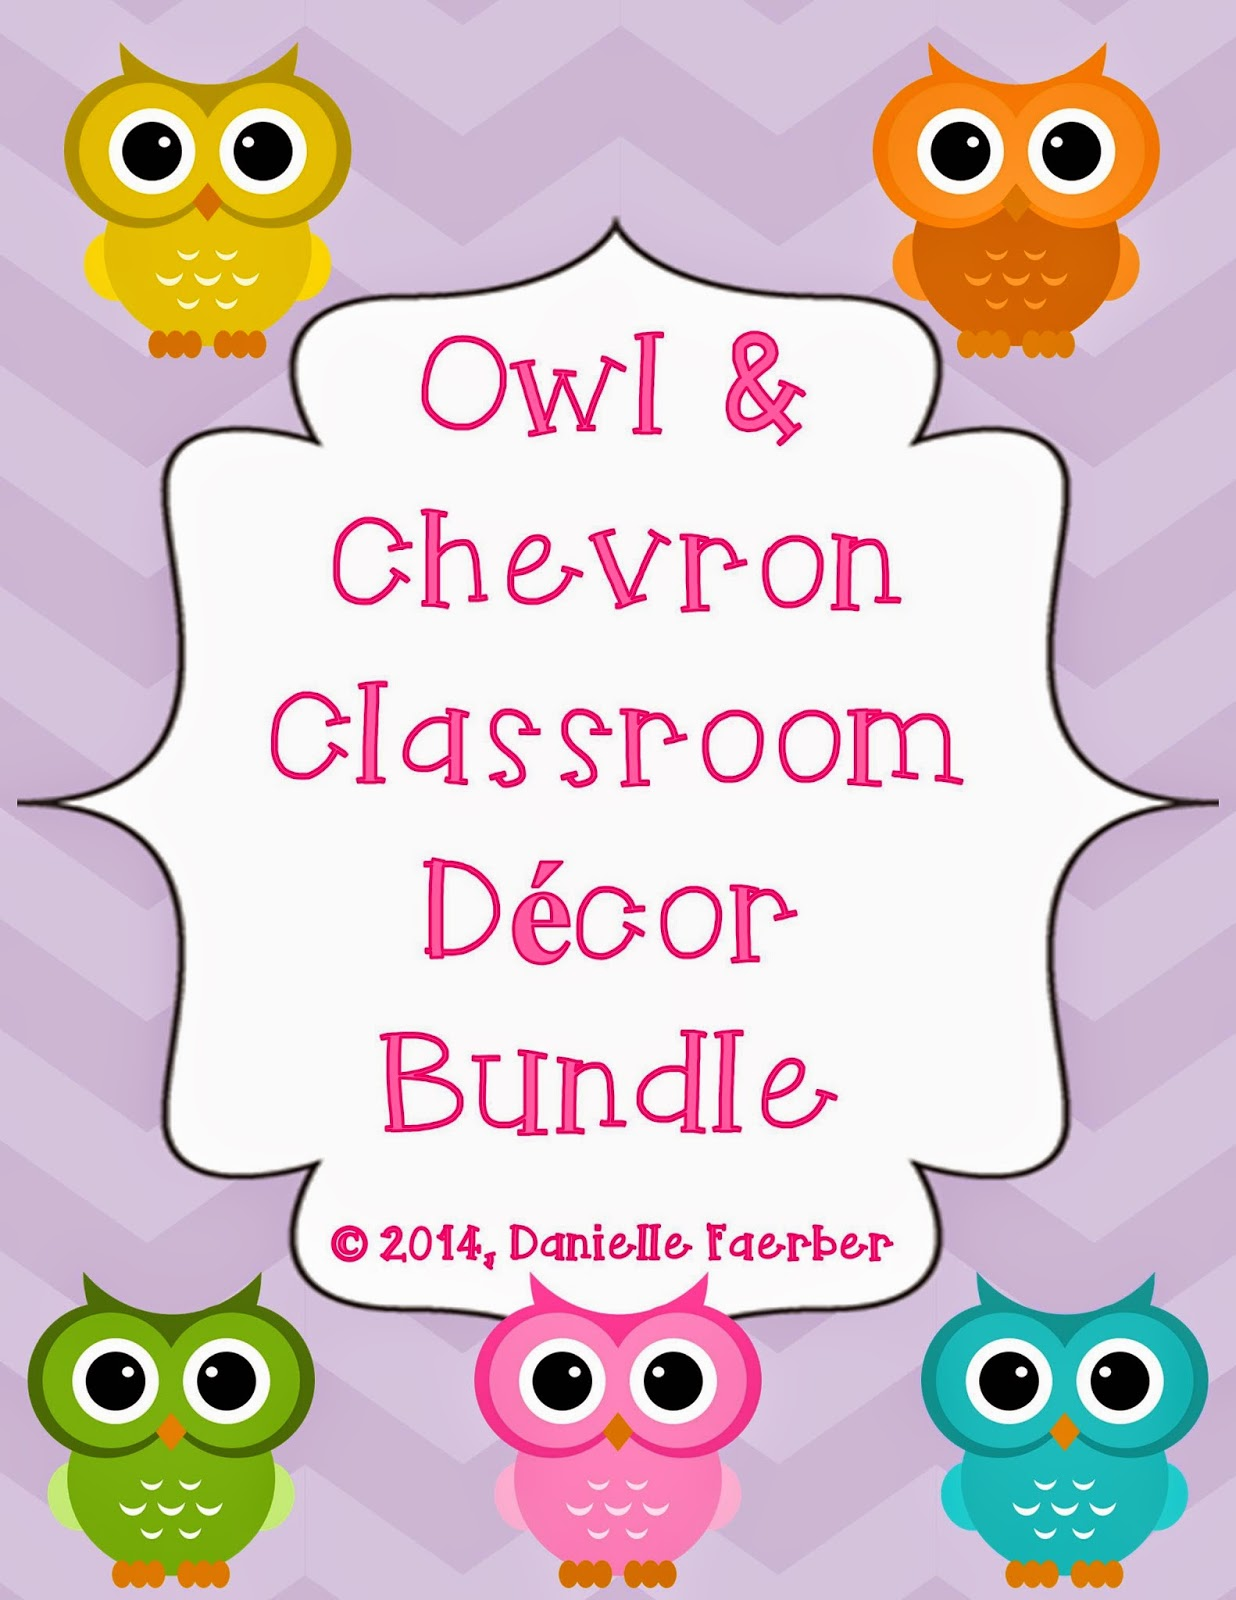 http://www.teacherspayteachers.com/Product/Owl-and-Chevron-Classroom-Decor-Bundle-808047